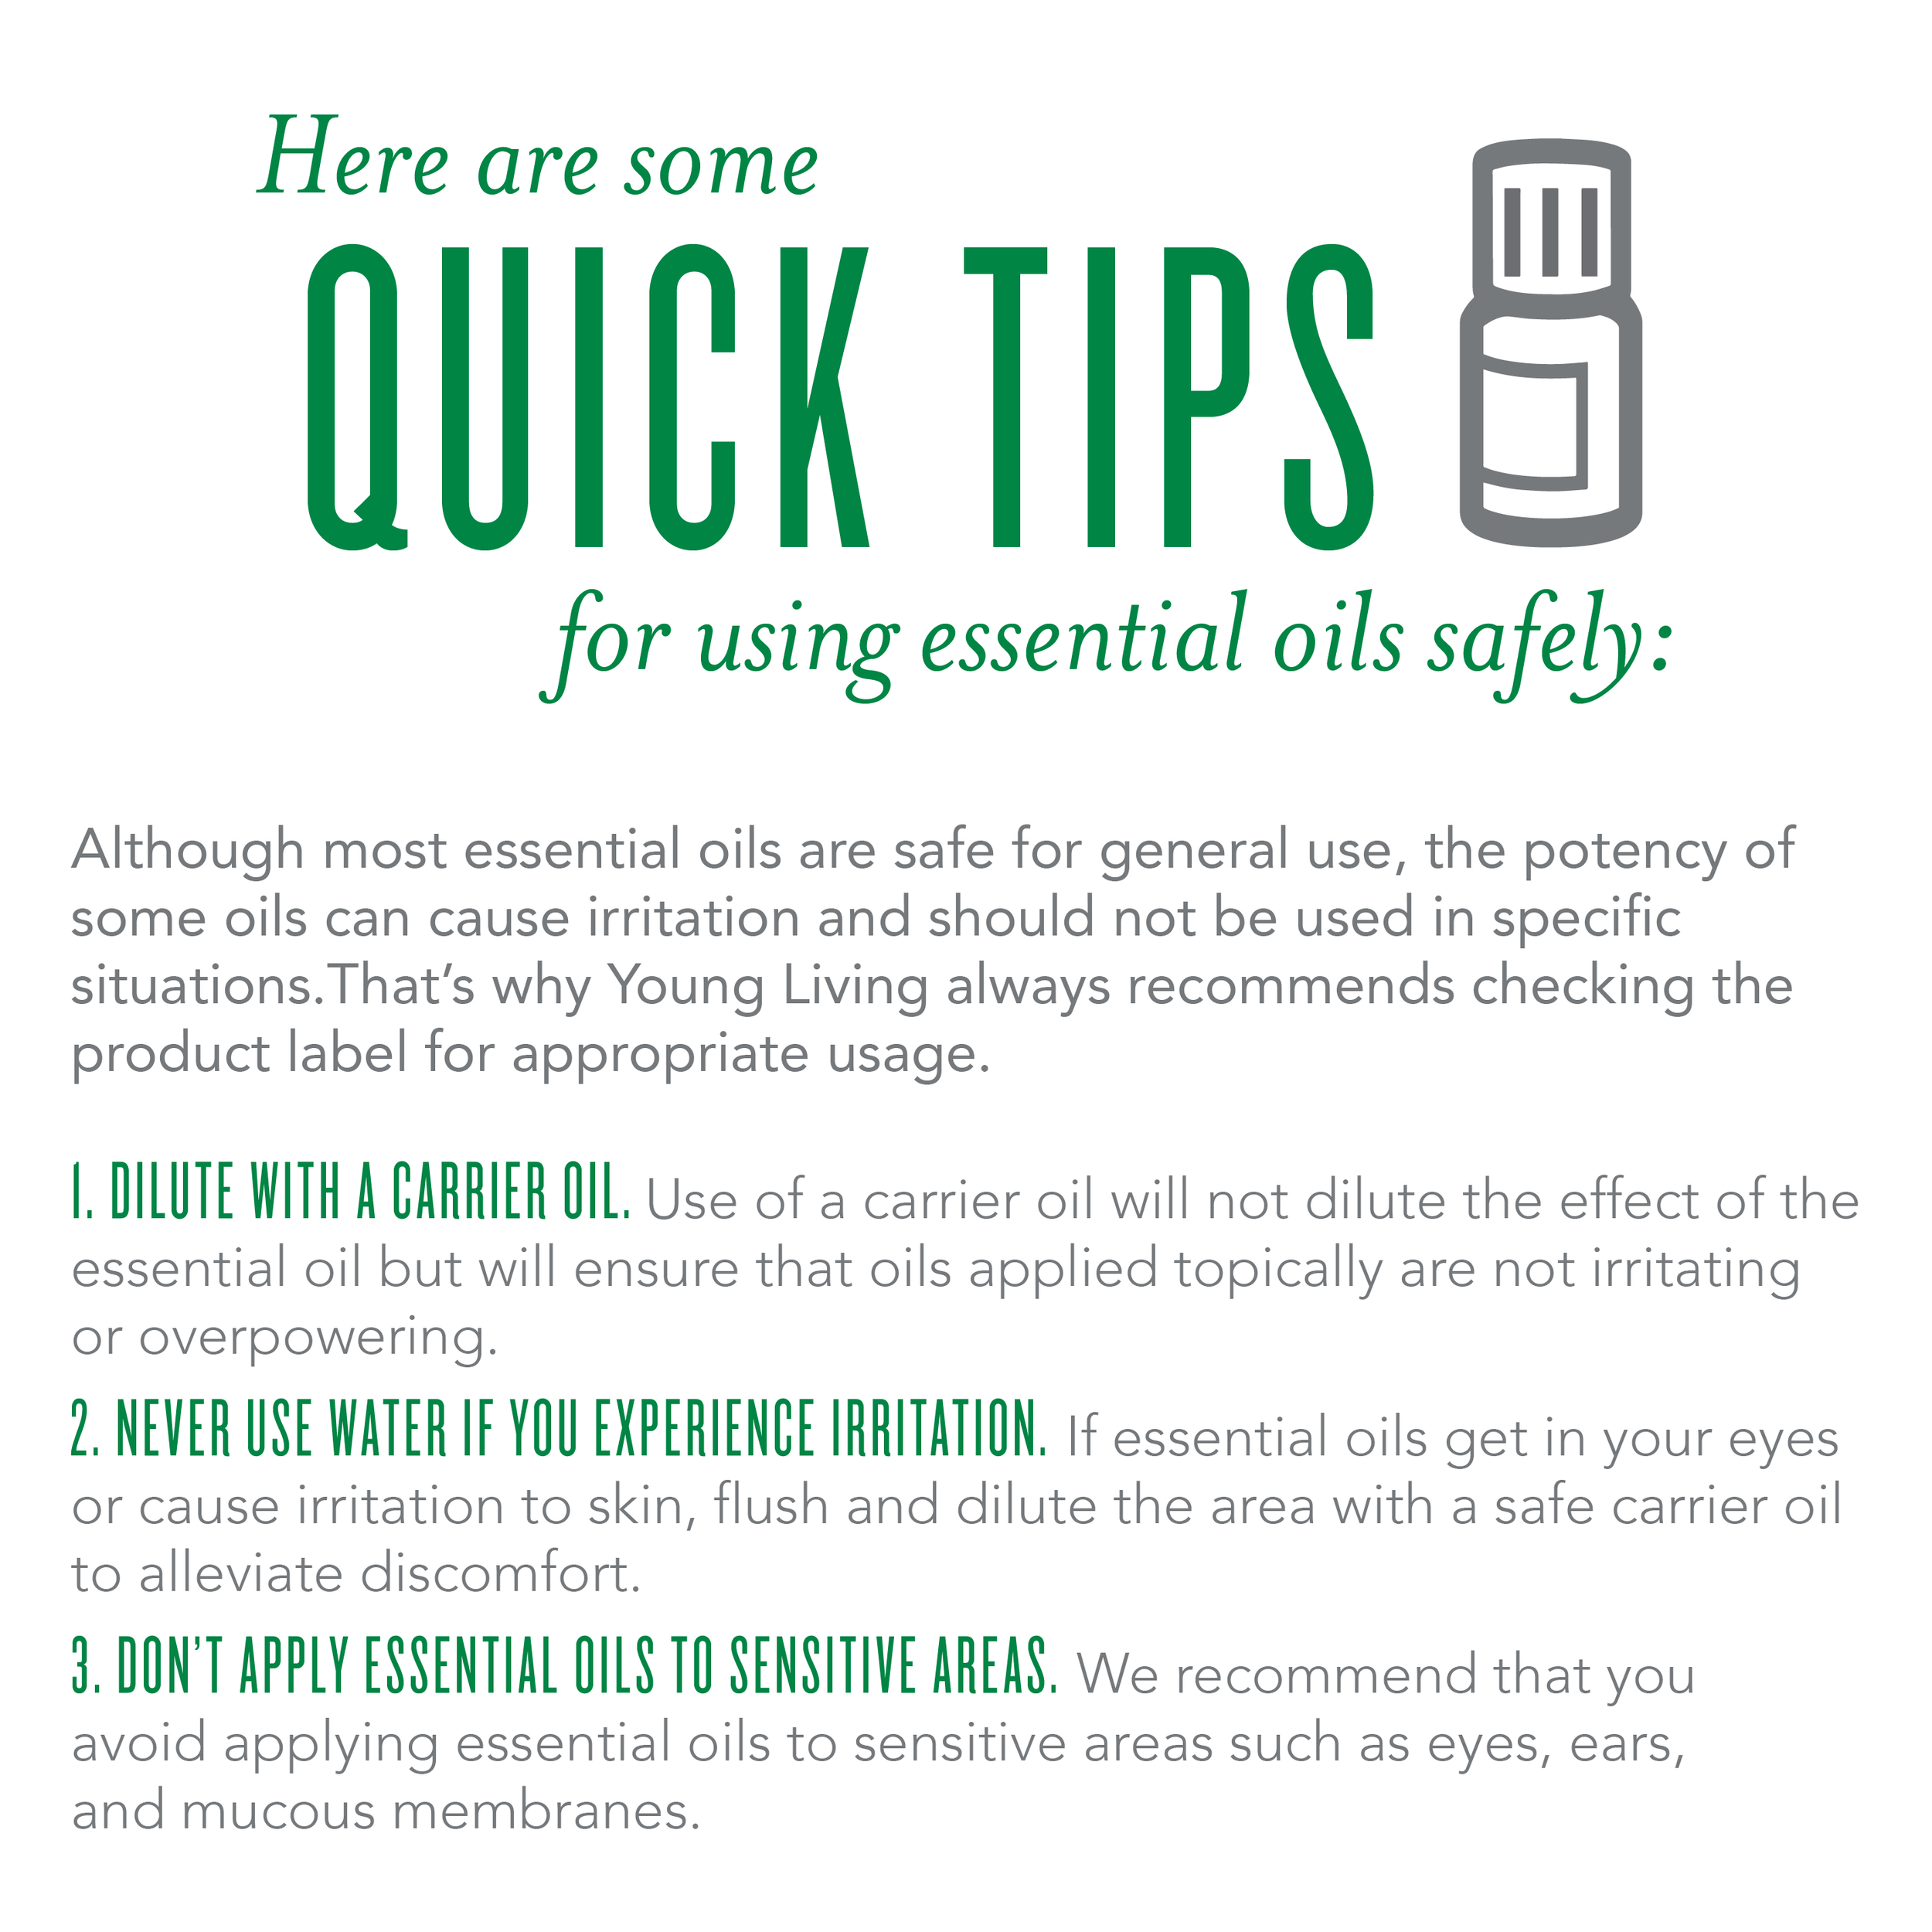 ylu-oil-safety-tips-infographic.png